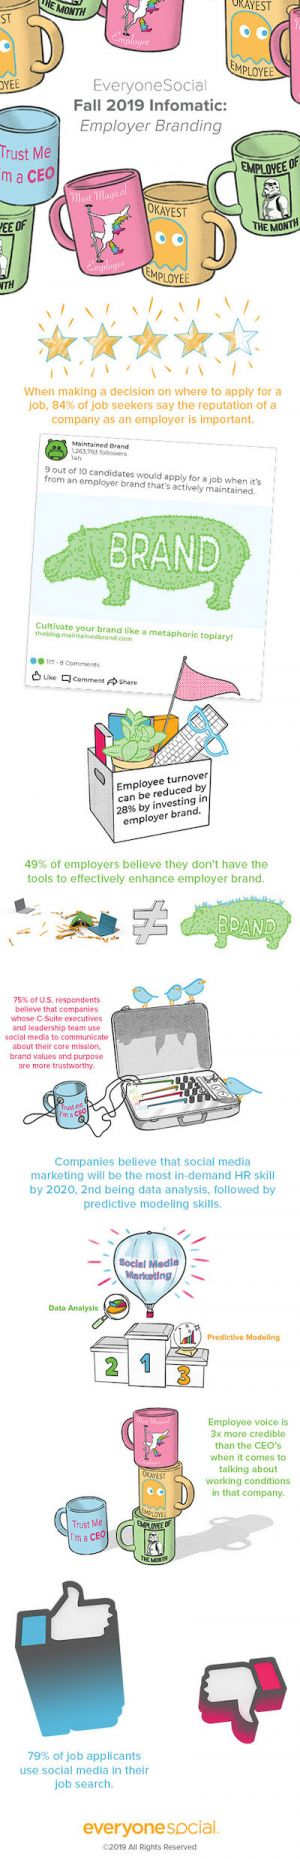 The Reasons Your Company Must Use Social Media to Build Employer Brand